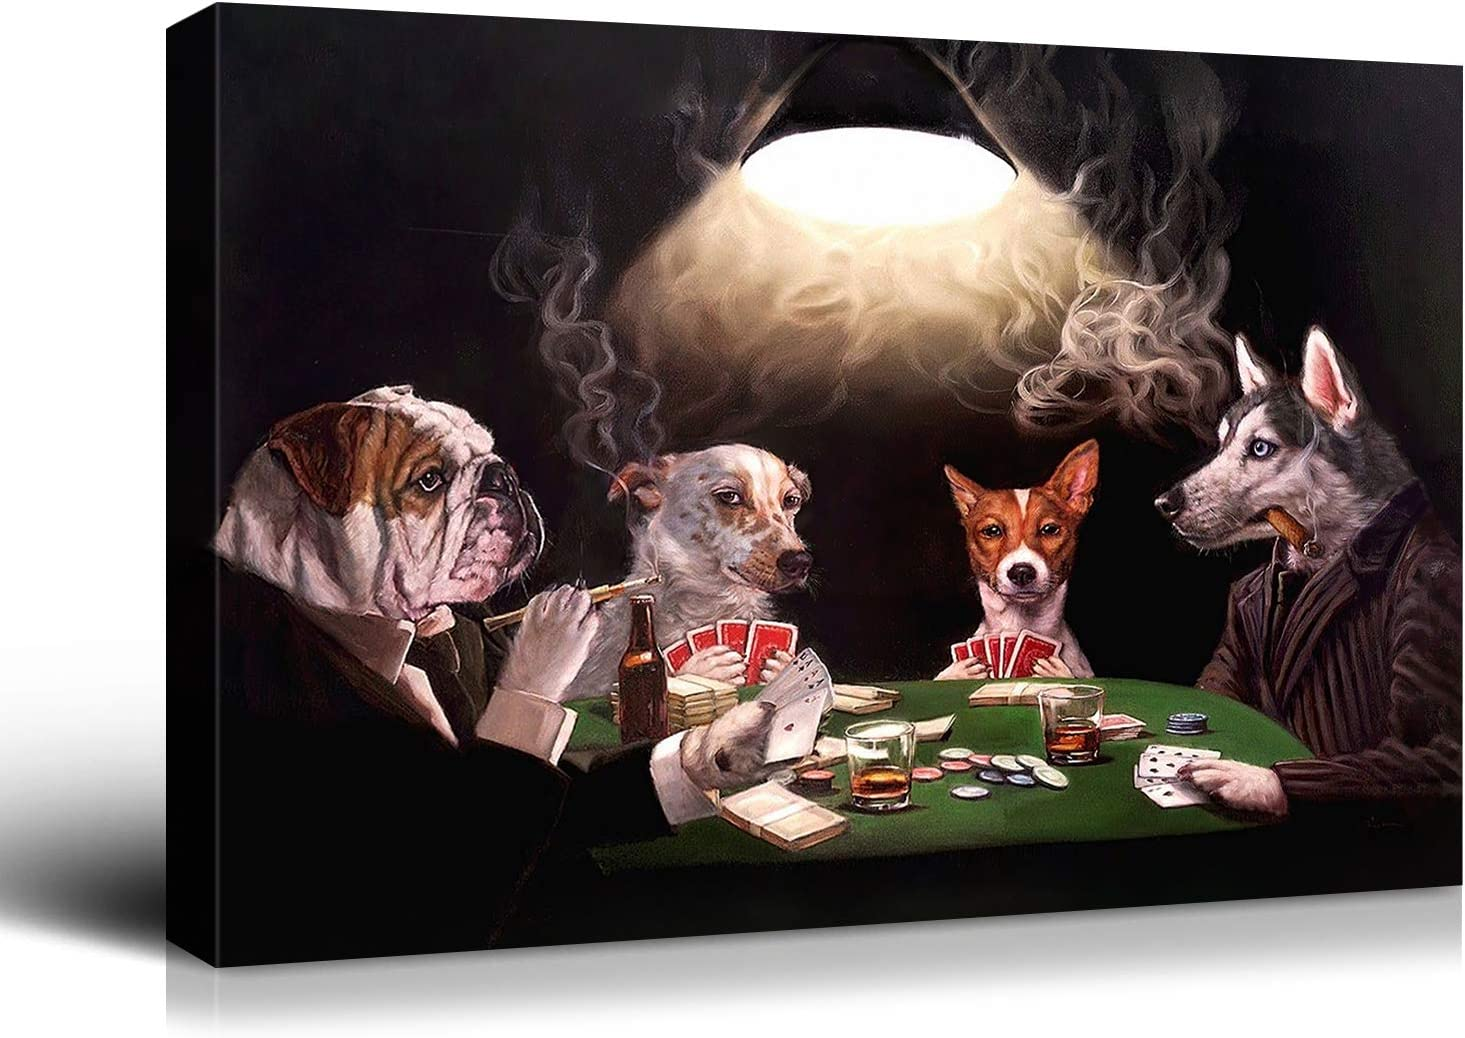 Denozer Canvas Wall Direct stock discount Limited time trial price Art - Dogs Playing C.M Coolidge Series Poker